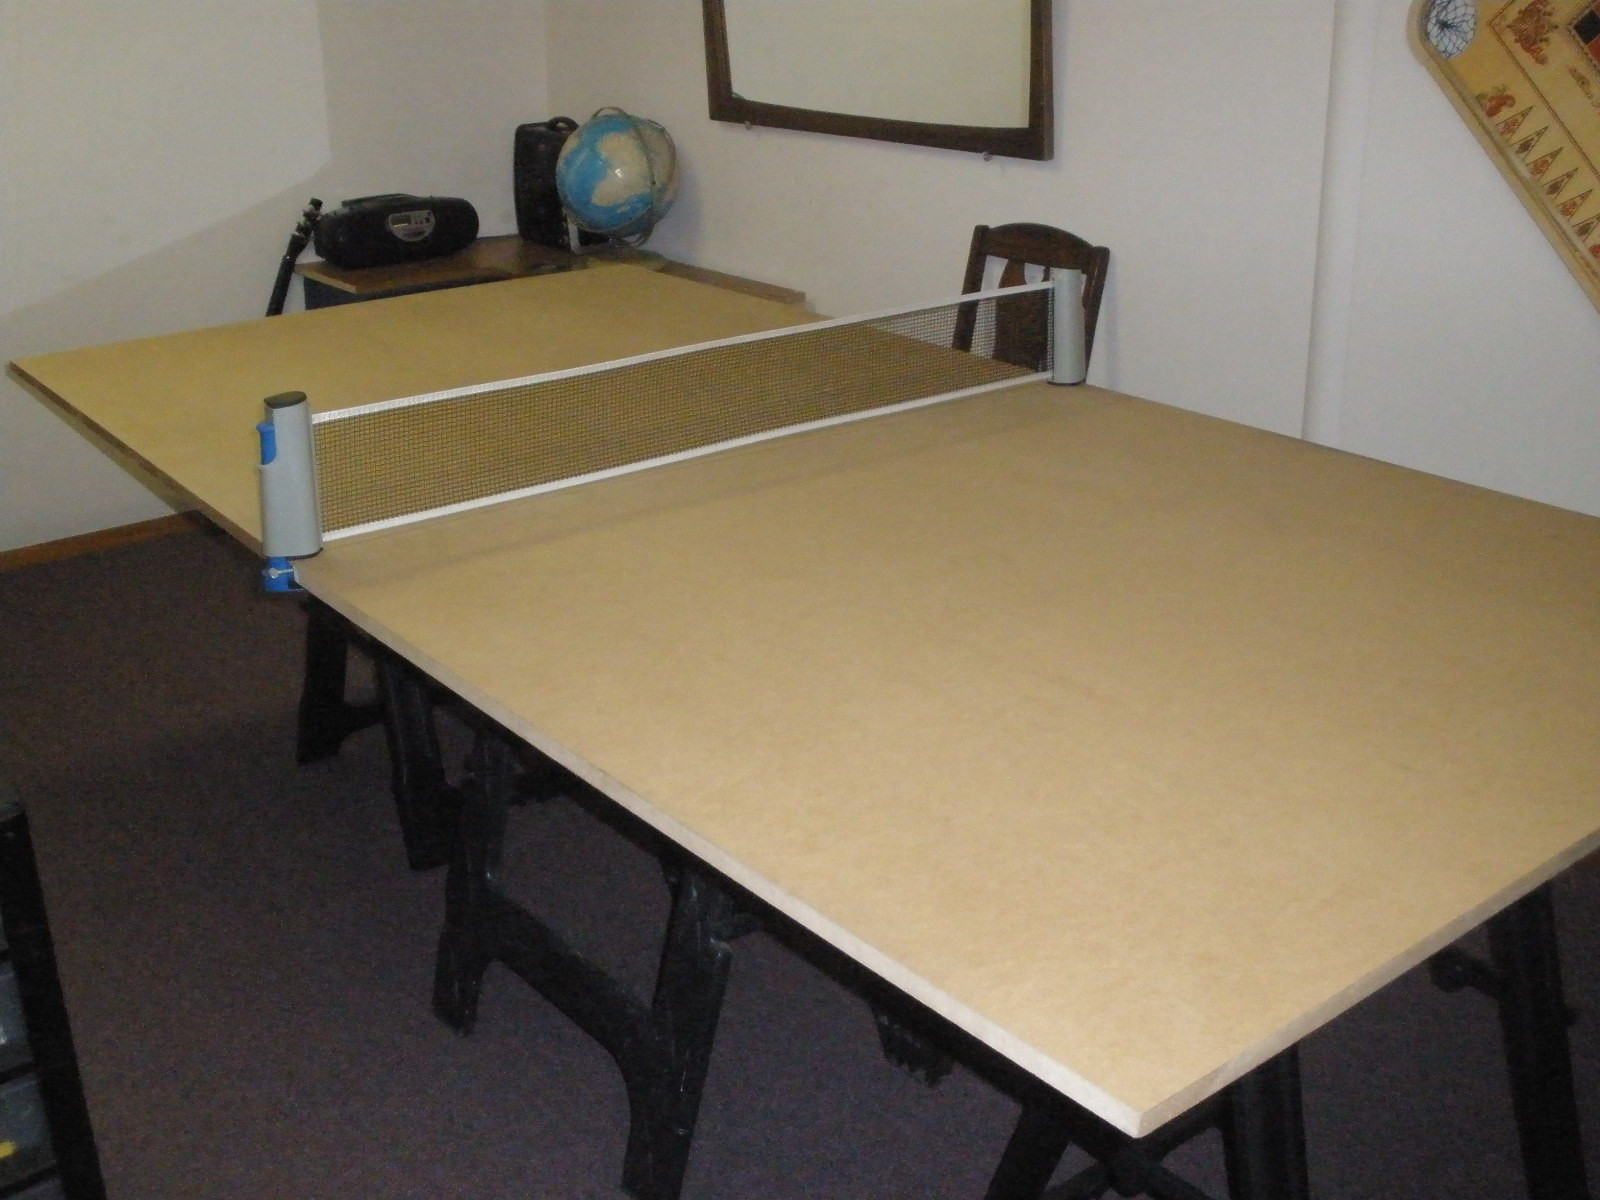 Best ideas about DIY Outside Ping Pong Table . Save or Pin DIY Ping Pong Table Now.